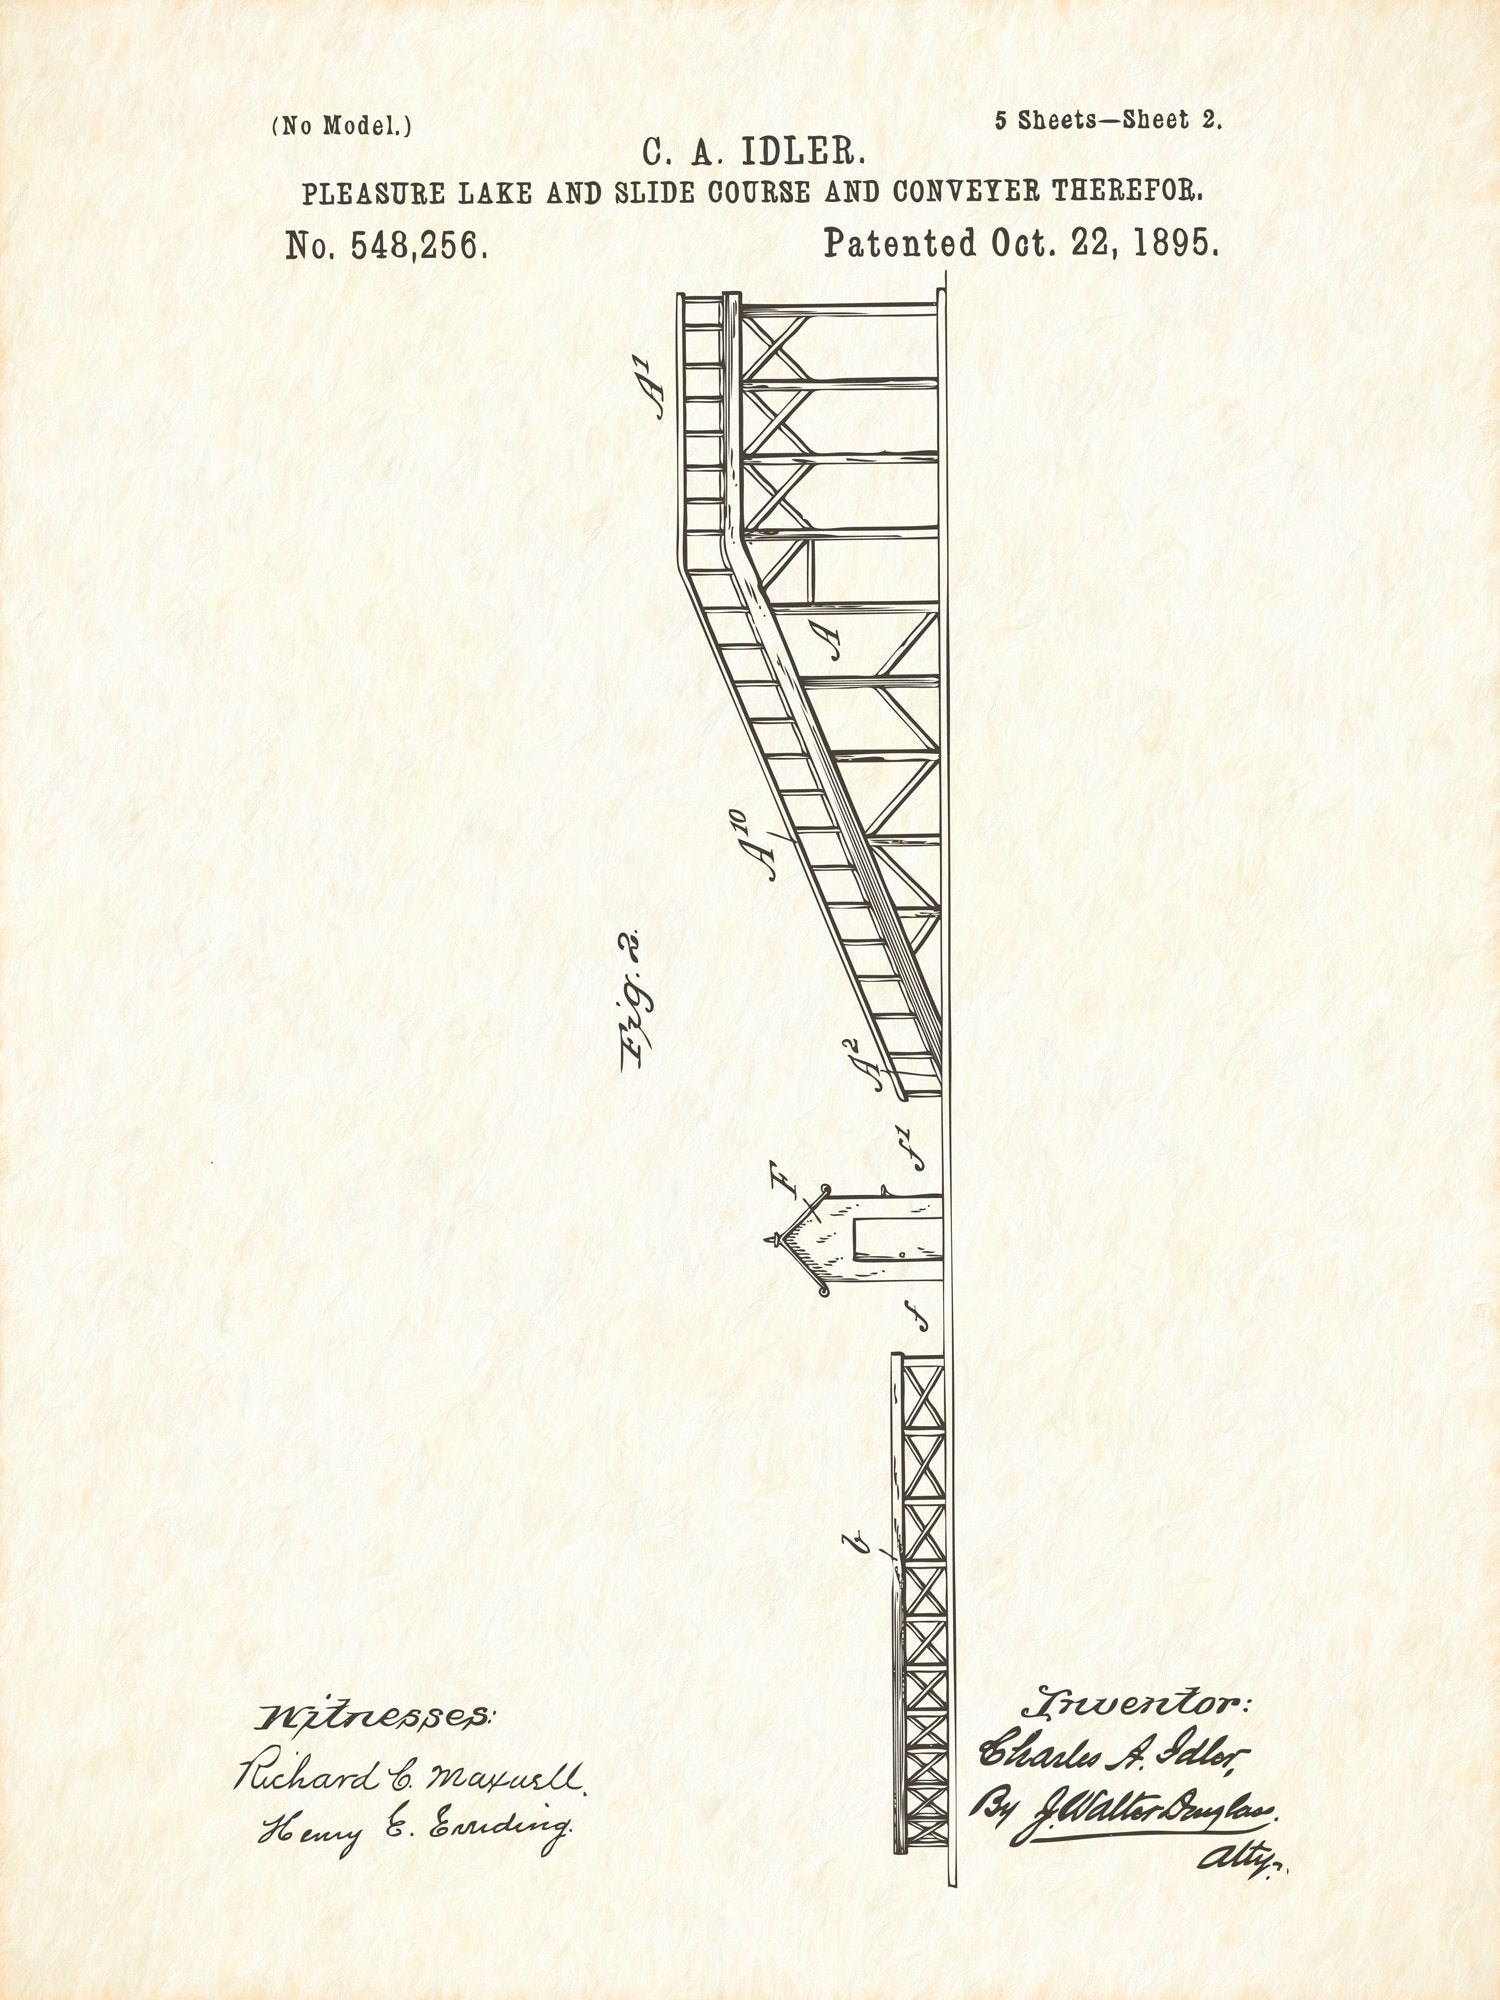 U.S. Patent No. 548256-2 Pleasure Lake and Slide Course and Conveyer Therefor Reworked, Series 1